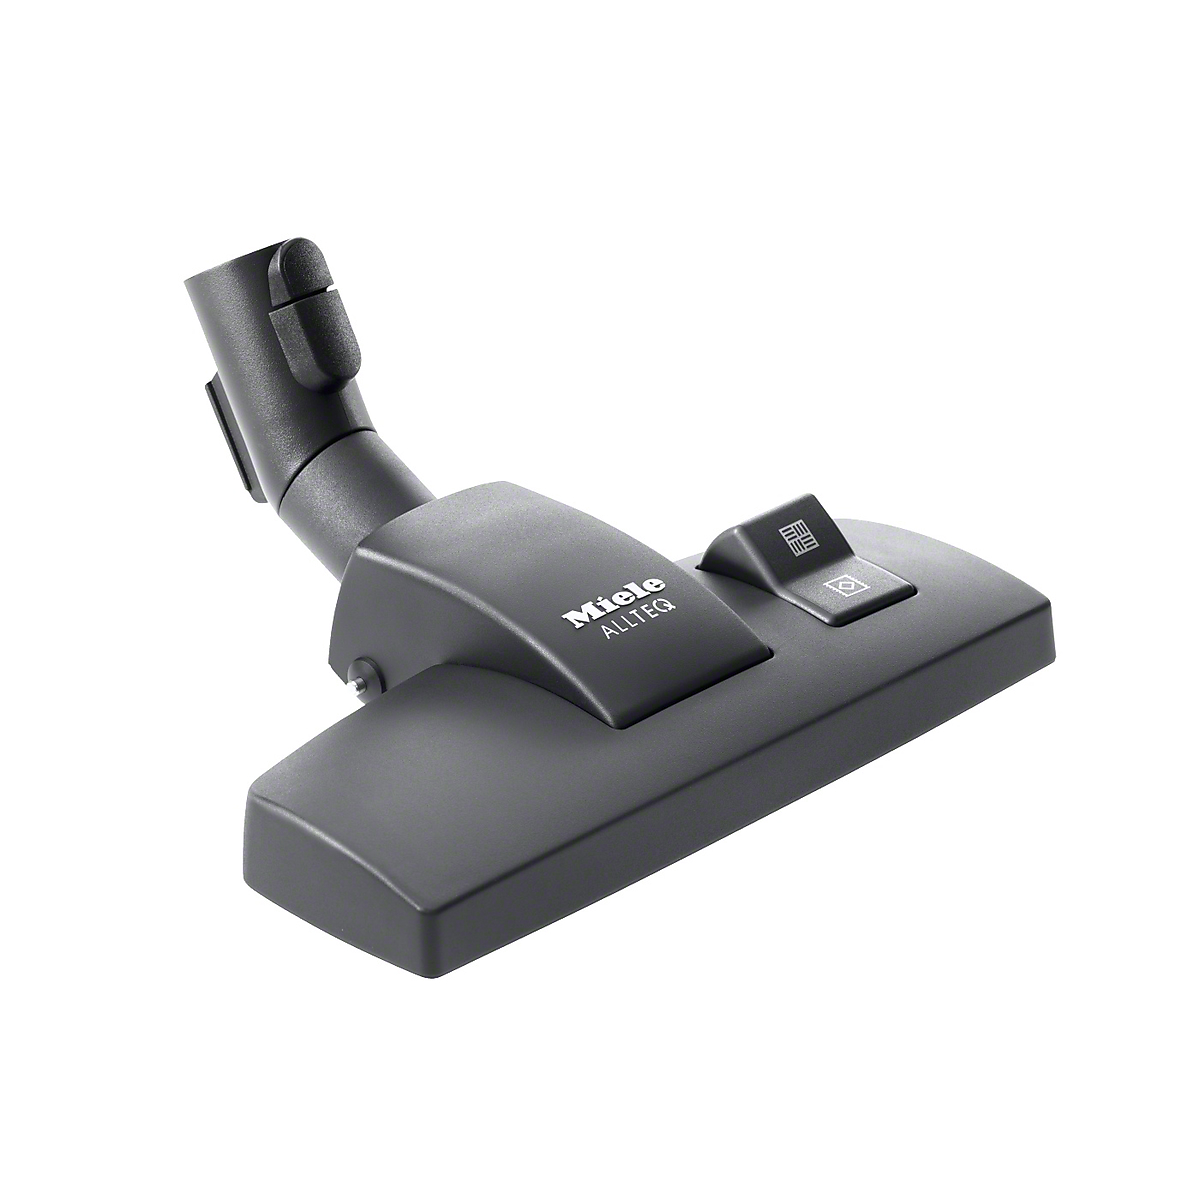 AllTeQ - floorheadfor vacuuming hard floors and carpets thanks to the retractable bristle strip.